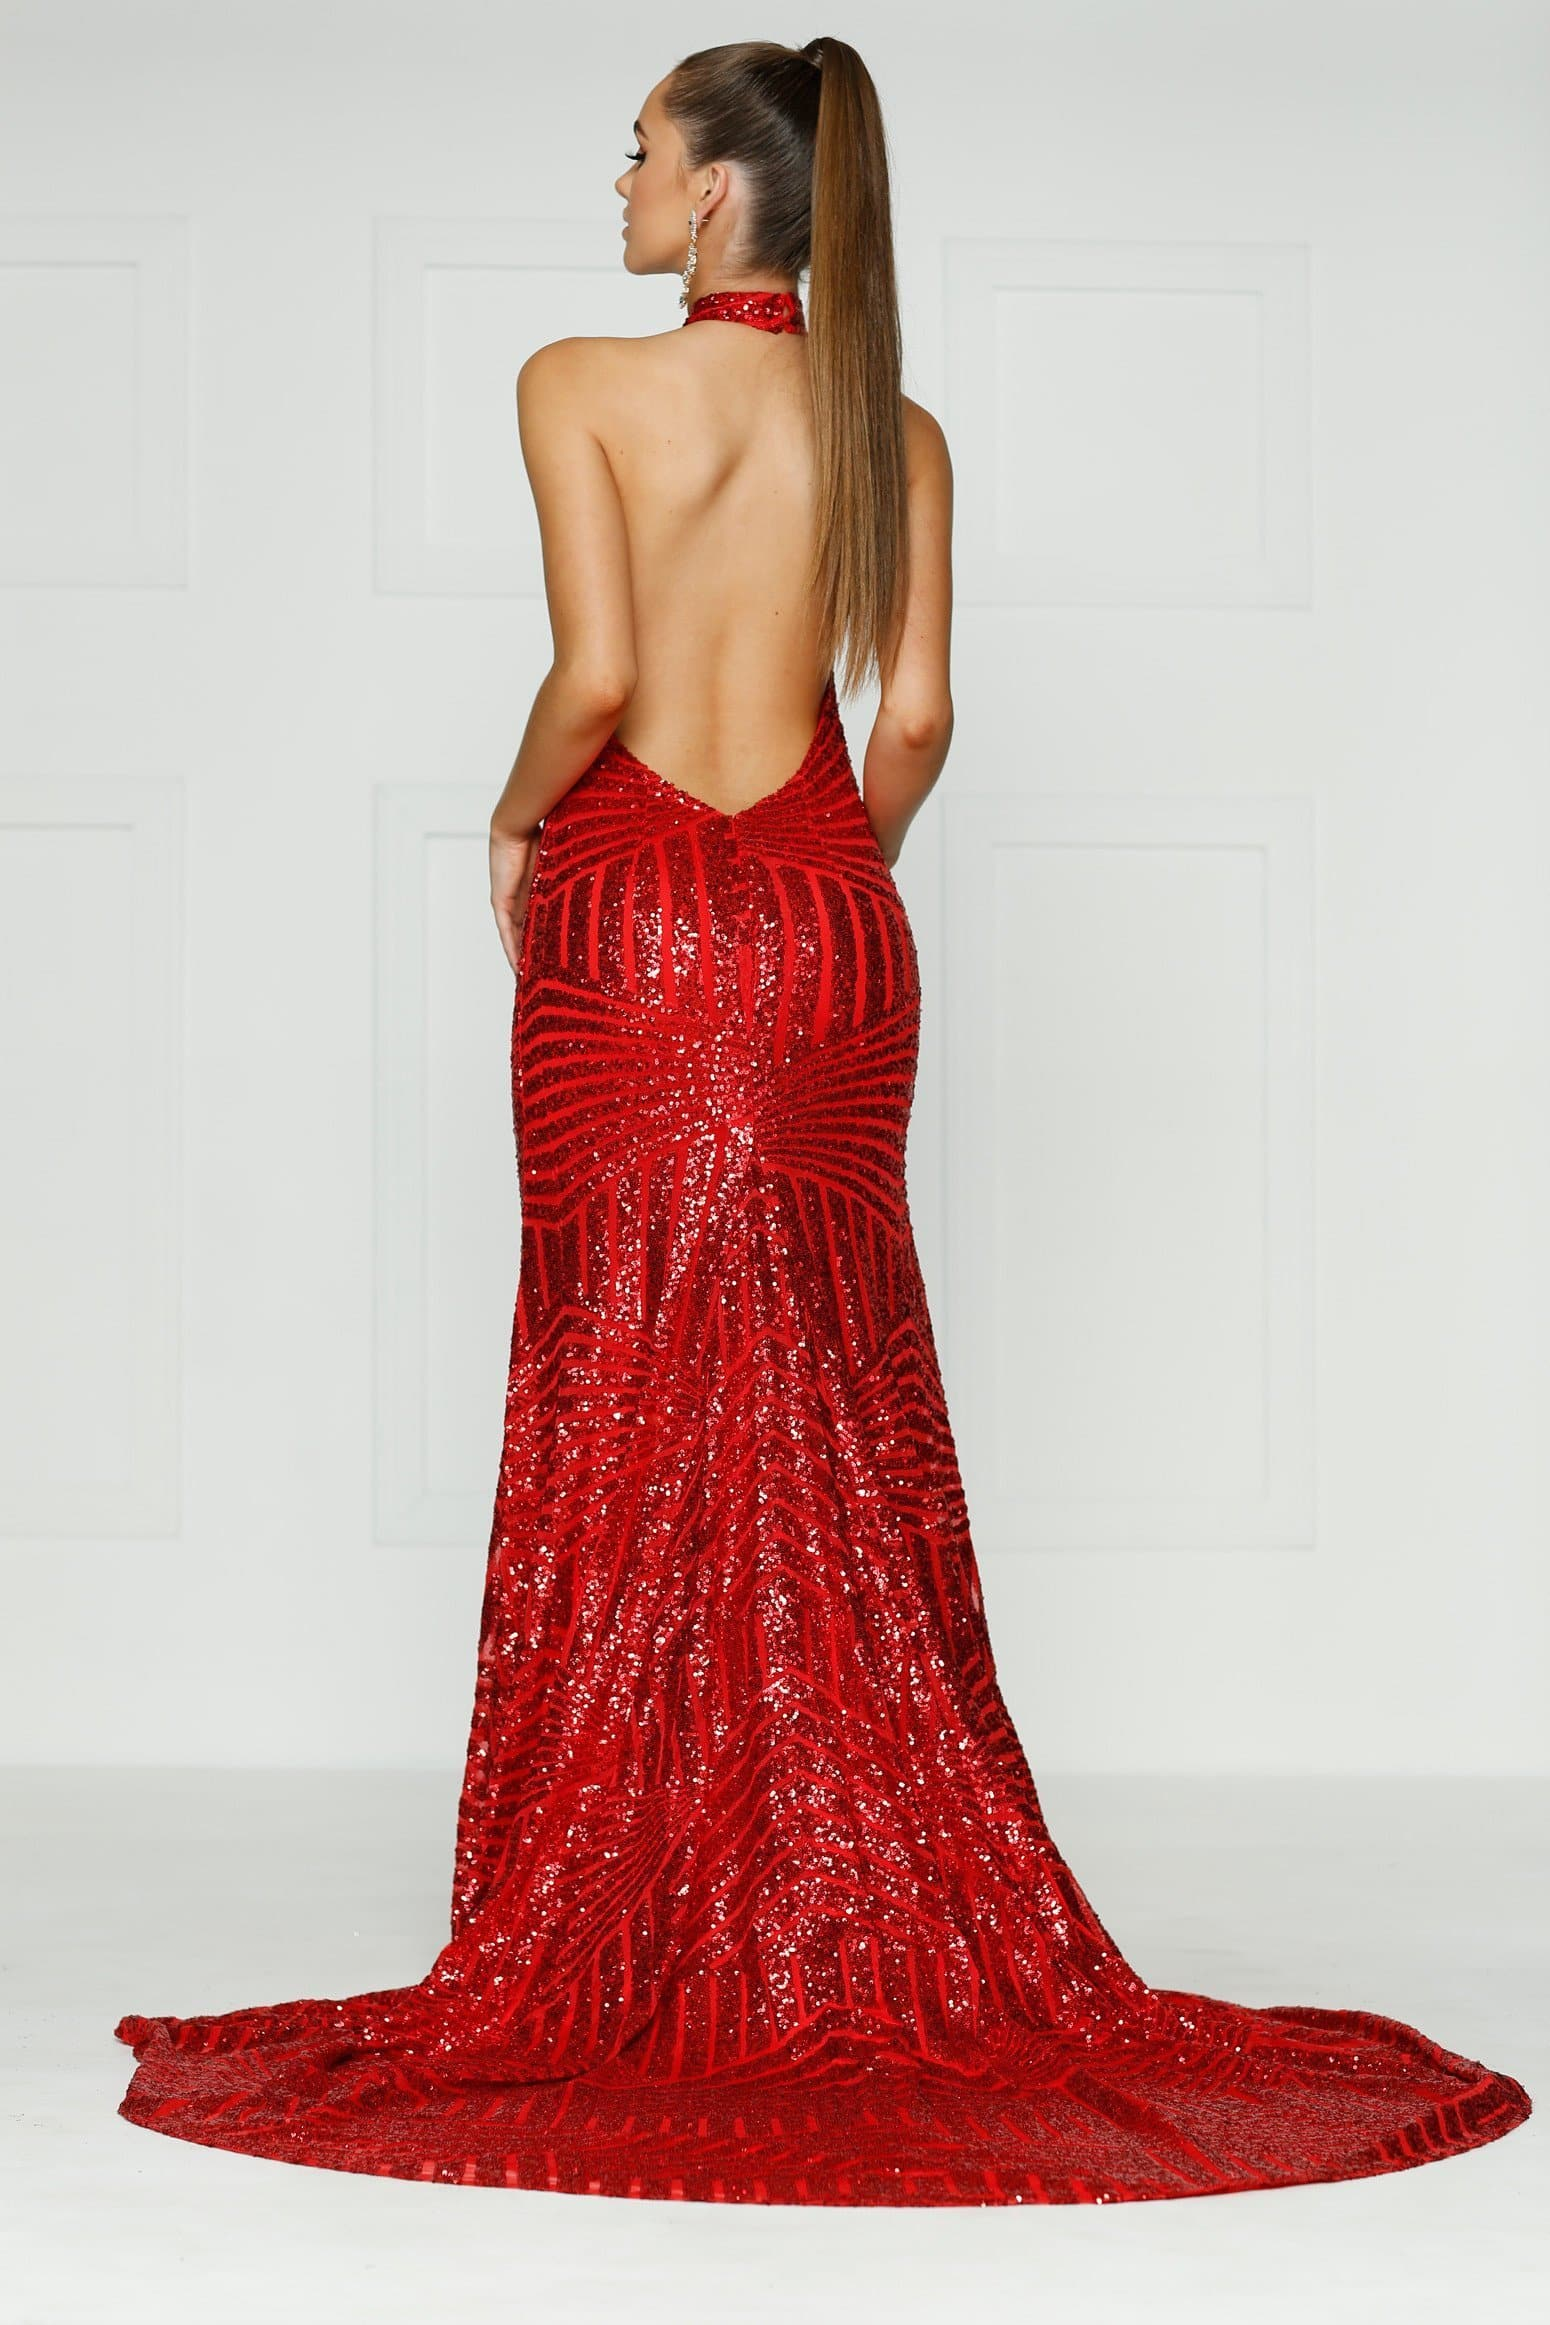 A&N Alia- Red Sequins Dress with Plunge Neck and Low Back